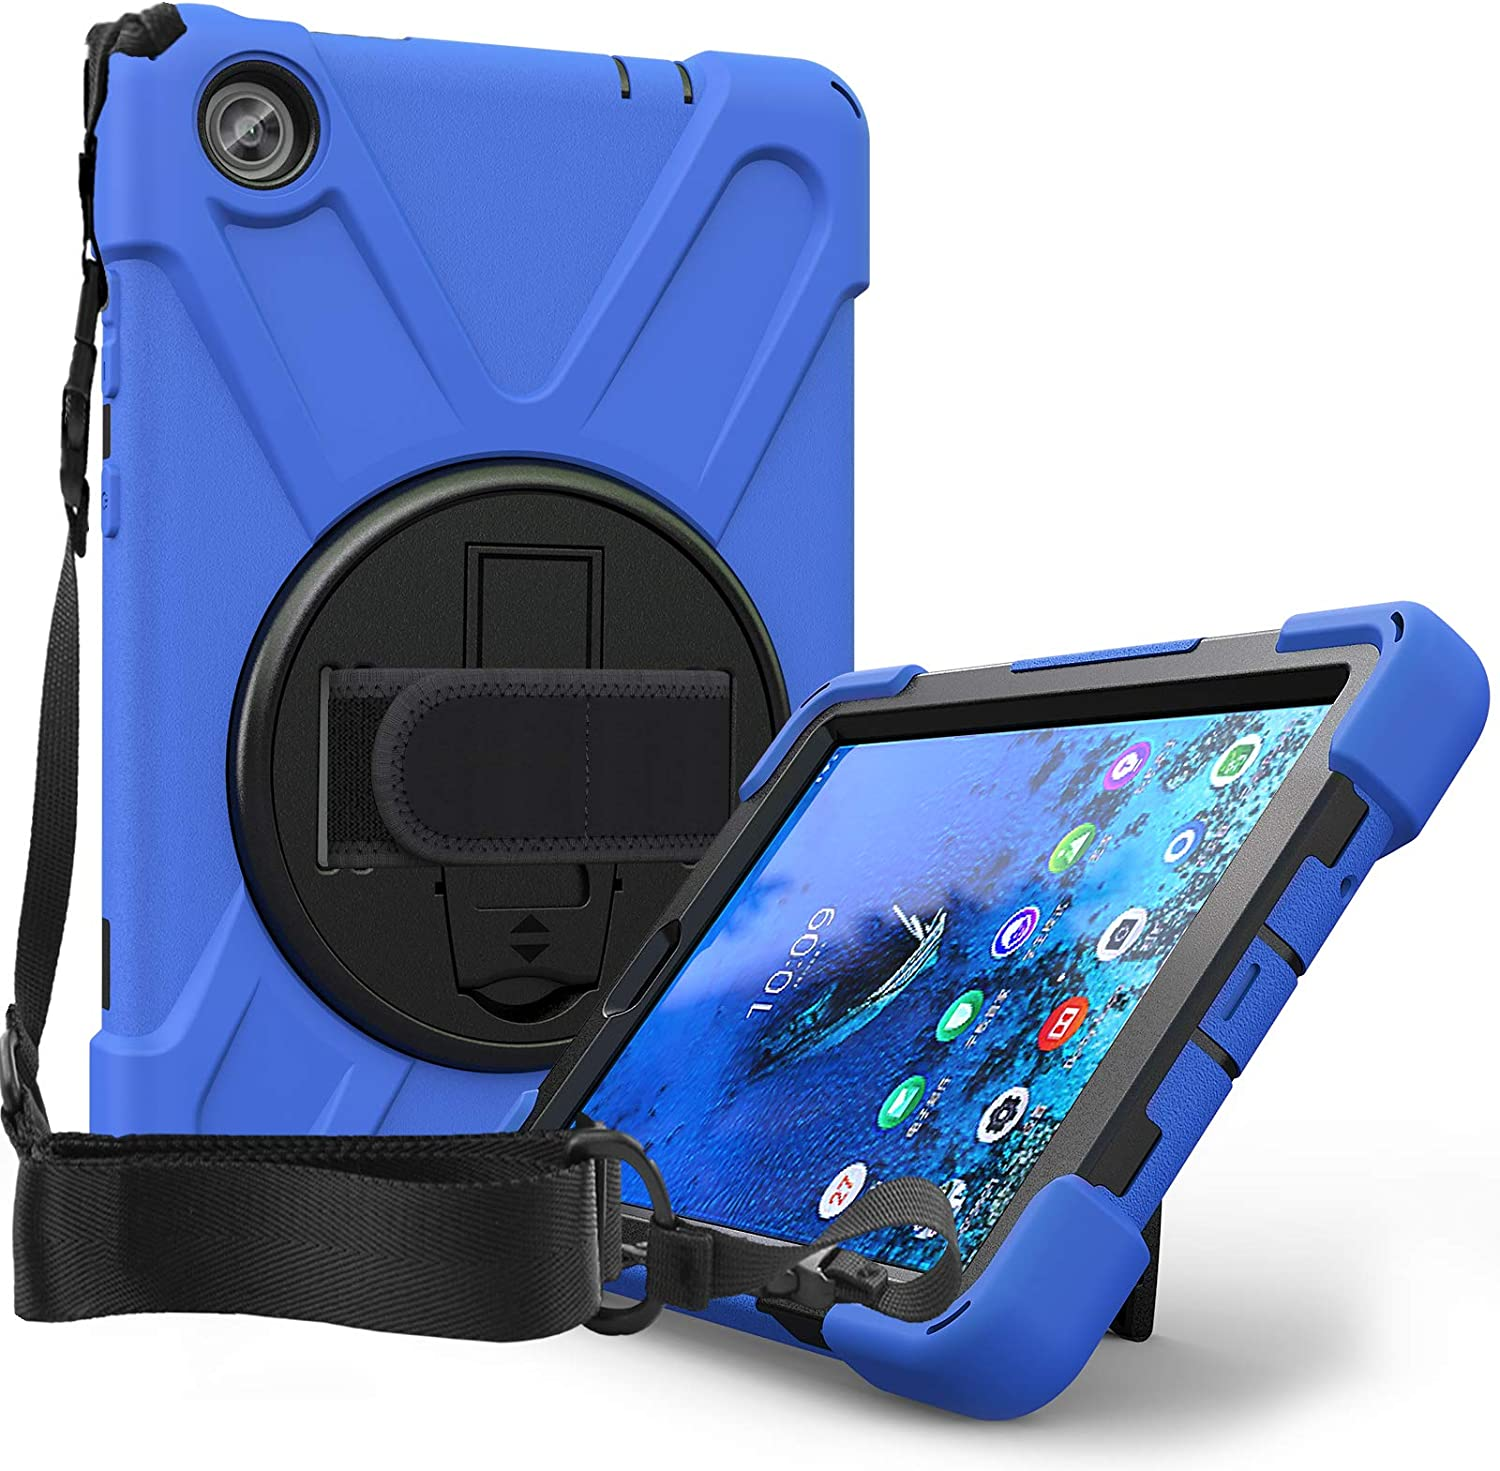 Case for Lenovo Tab M8 HD 8.0 inch Tablet TB-8505F TB-8505X TB-8505 | Herize Full Body High Impact Resistant Kidsproof Drop Protection Silicone Case W/ Hand Strap for Lenovo Smart Tab M8 | Blue